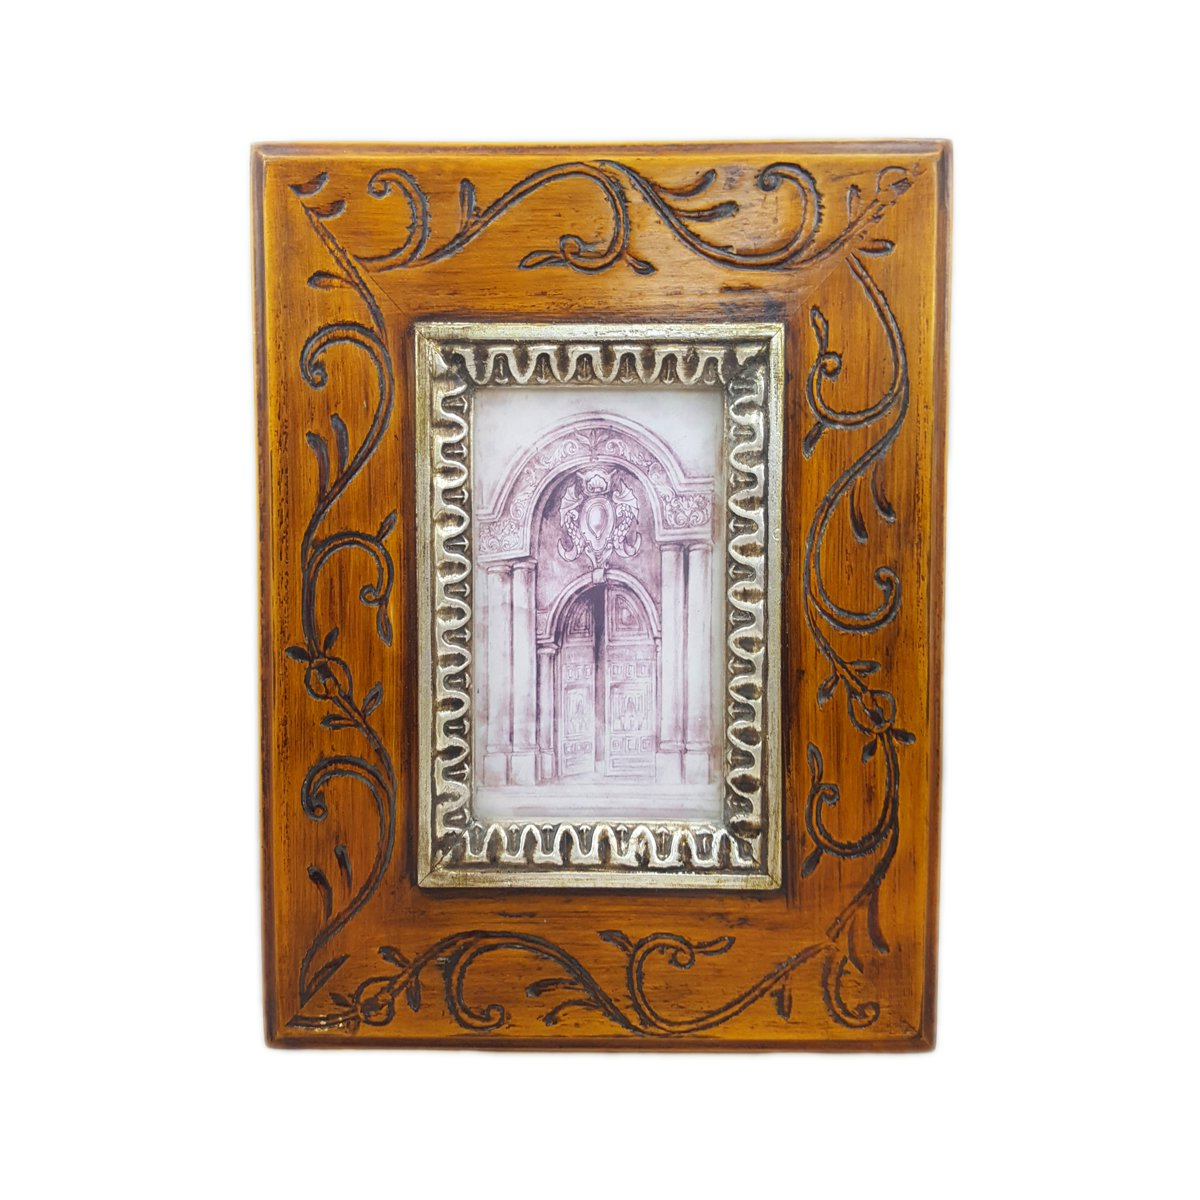 Rustic Scroll Design: Floral Scroll Design 10x11 Rustic Wood Photo Frame Holds 3